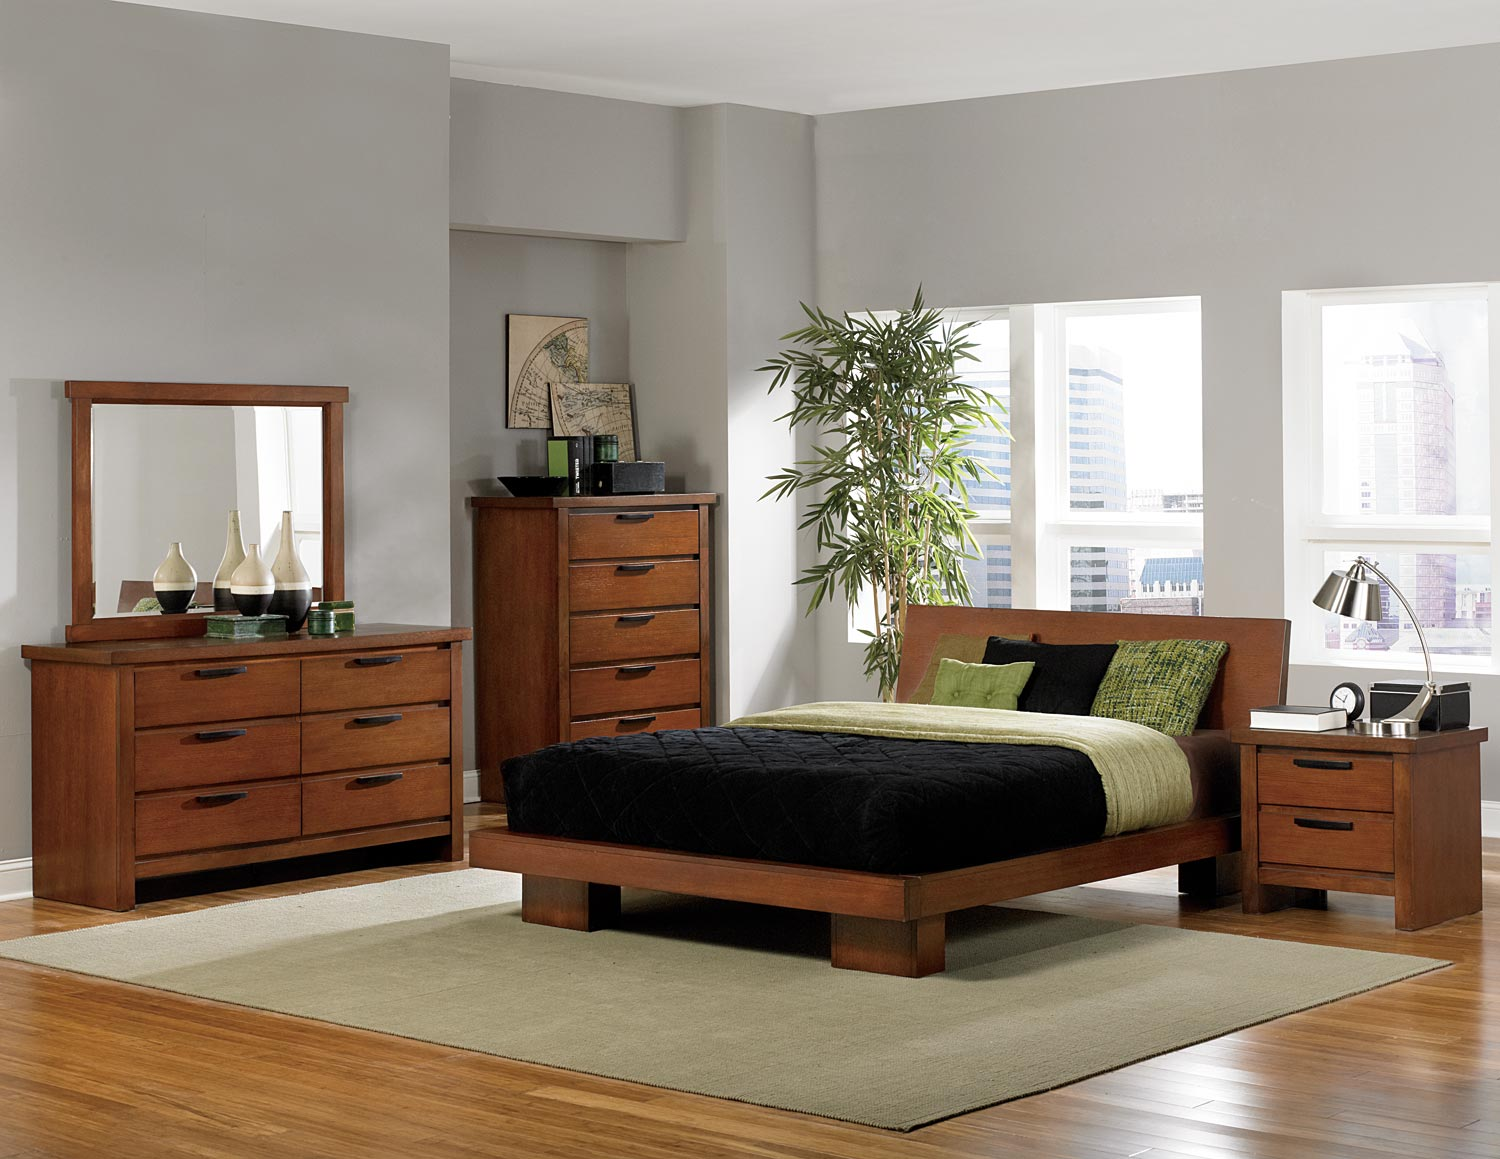 Homelegance Kobe Platform Bedroom Collection - Dark Oak